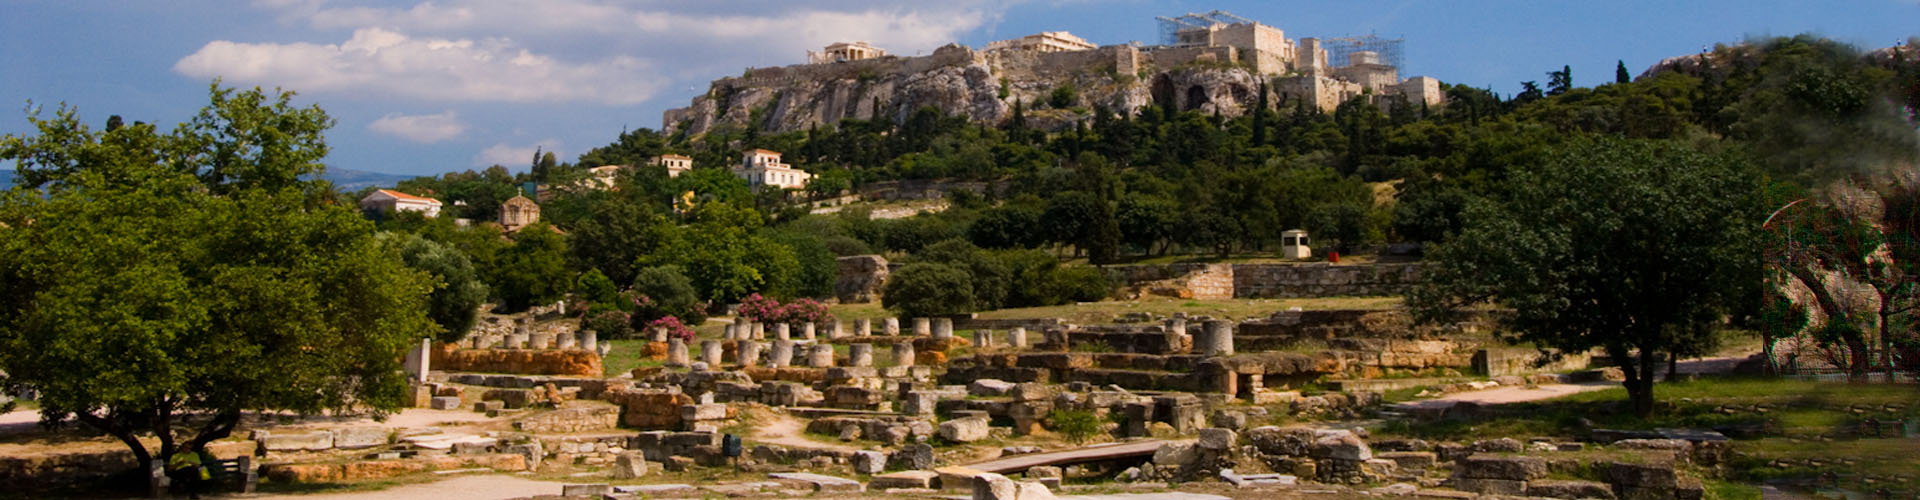 leisure-travel-ancient-agora-top